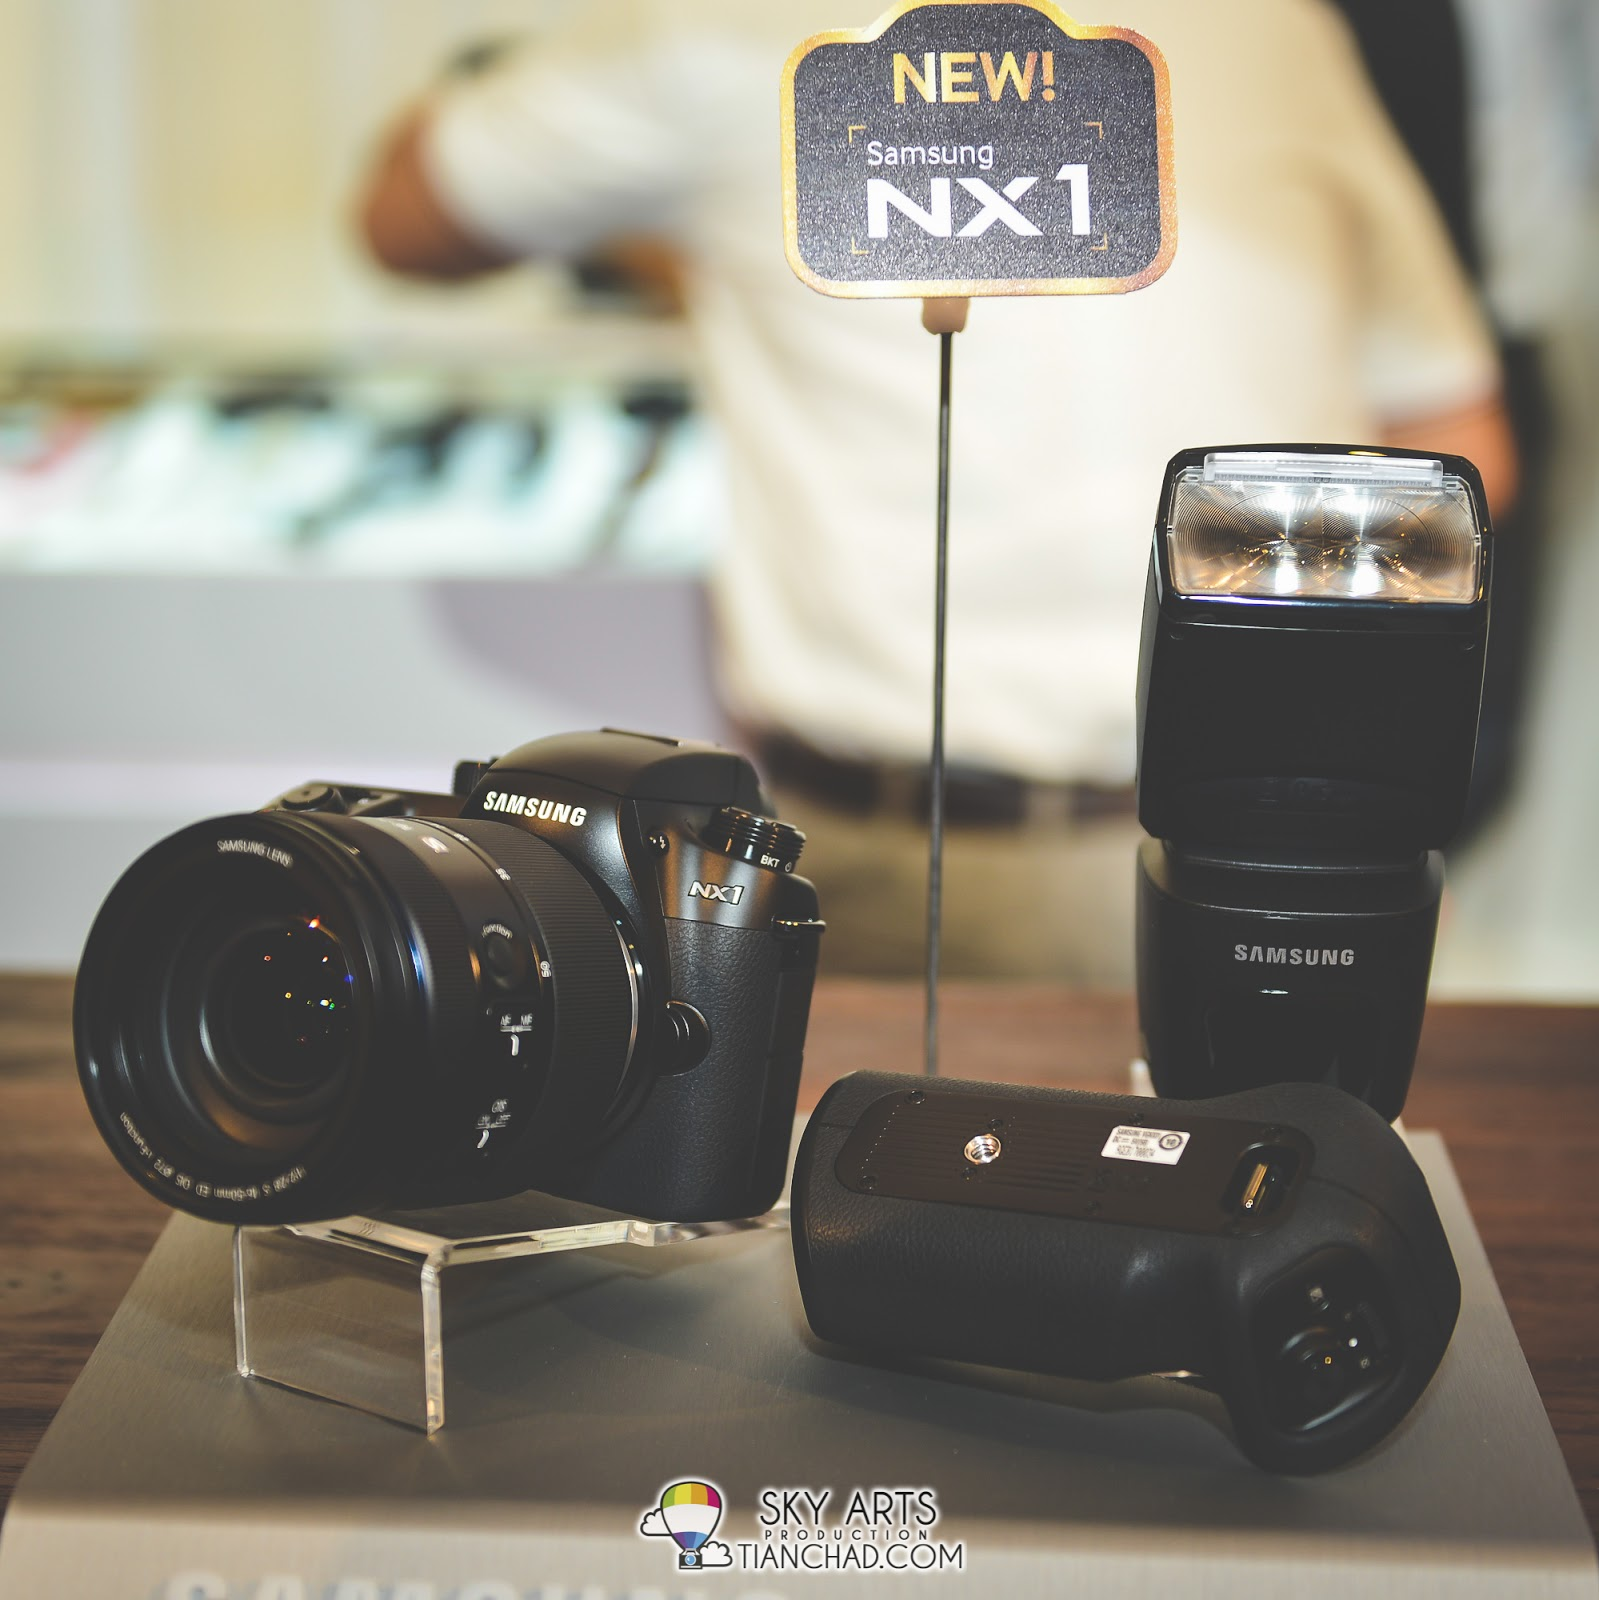 Samsung NX1 with Speed light and battery grip at side